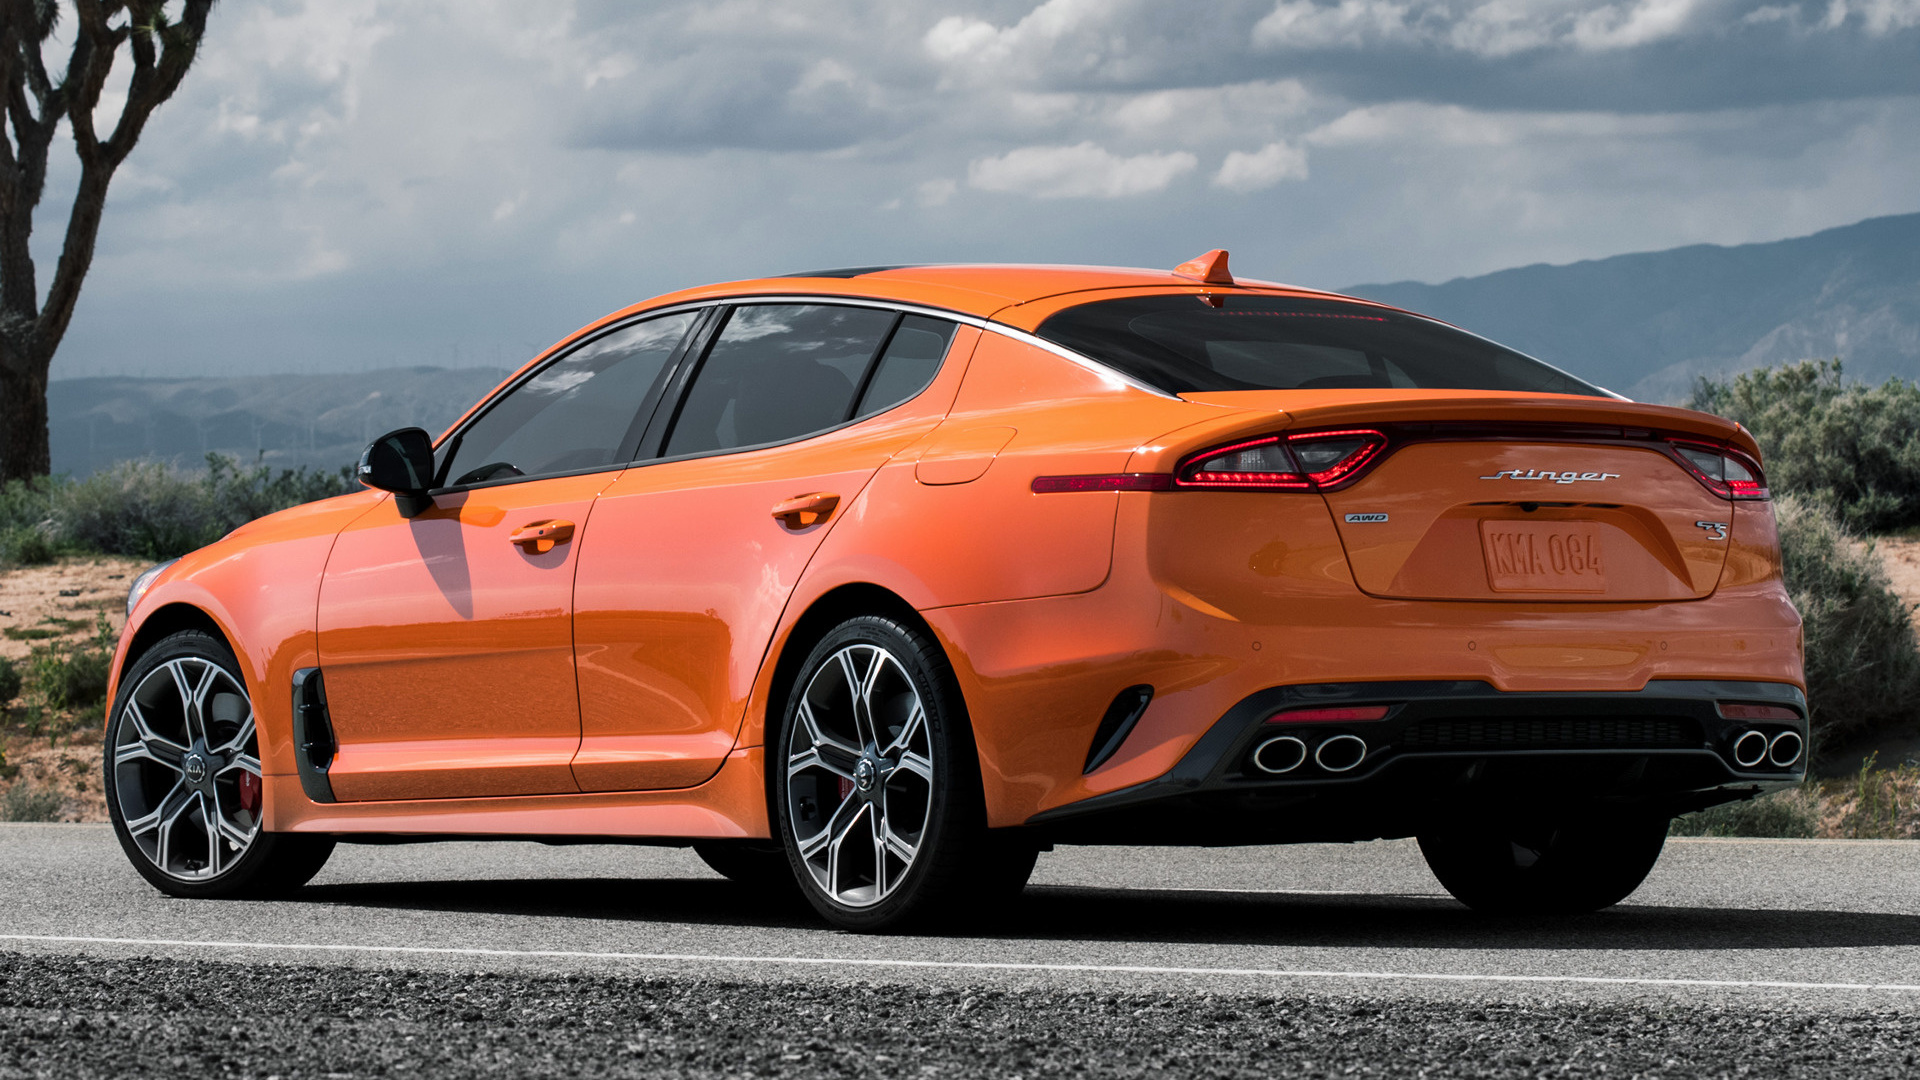 2019 Kia Stinger Gts Us Wallpapers And Hd Images Car